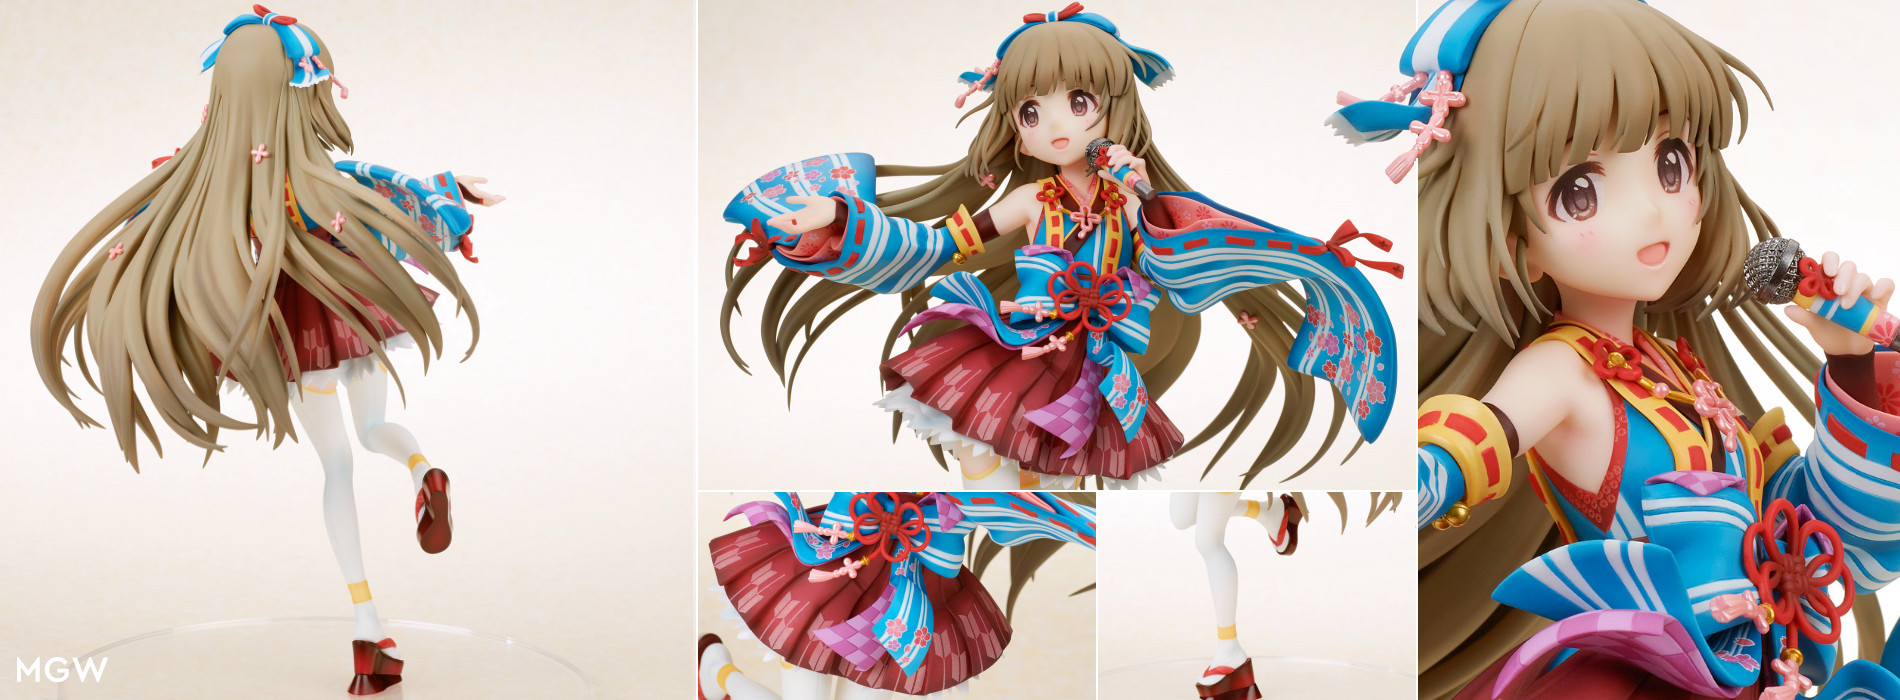 Yorita Yoshino Wadatsumi no Michibikite Ver. by BROCCOLI from THE iDOLM@STER CINDERELLA GIRLS